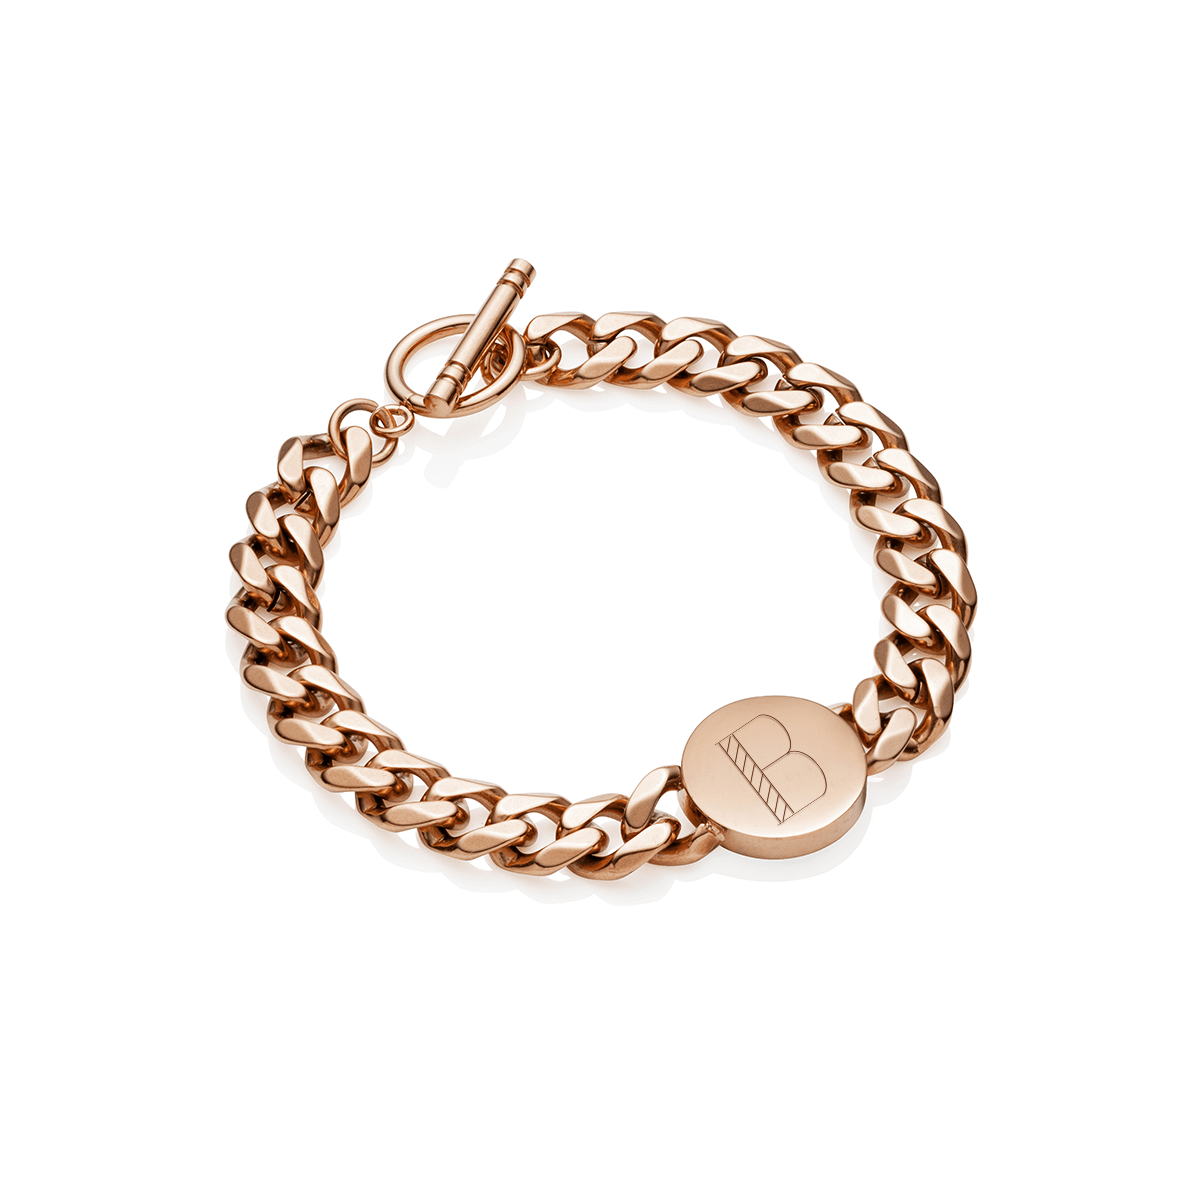 Circular Curb Chain Personalise Bracelet (Rose Gold)